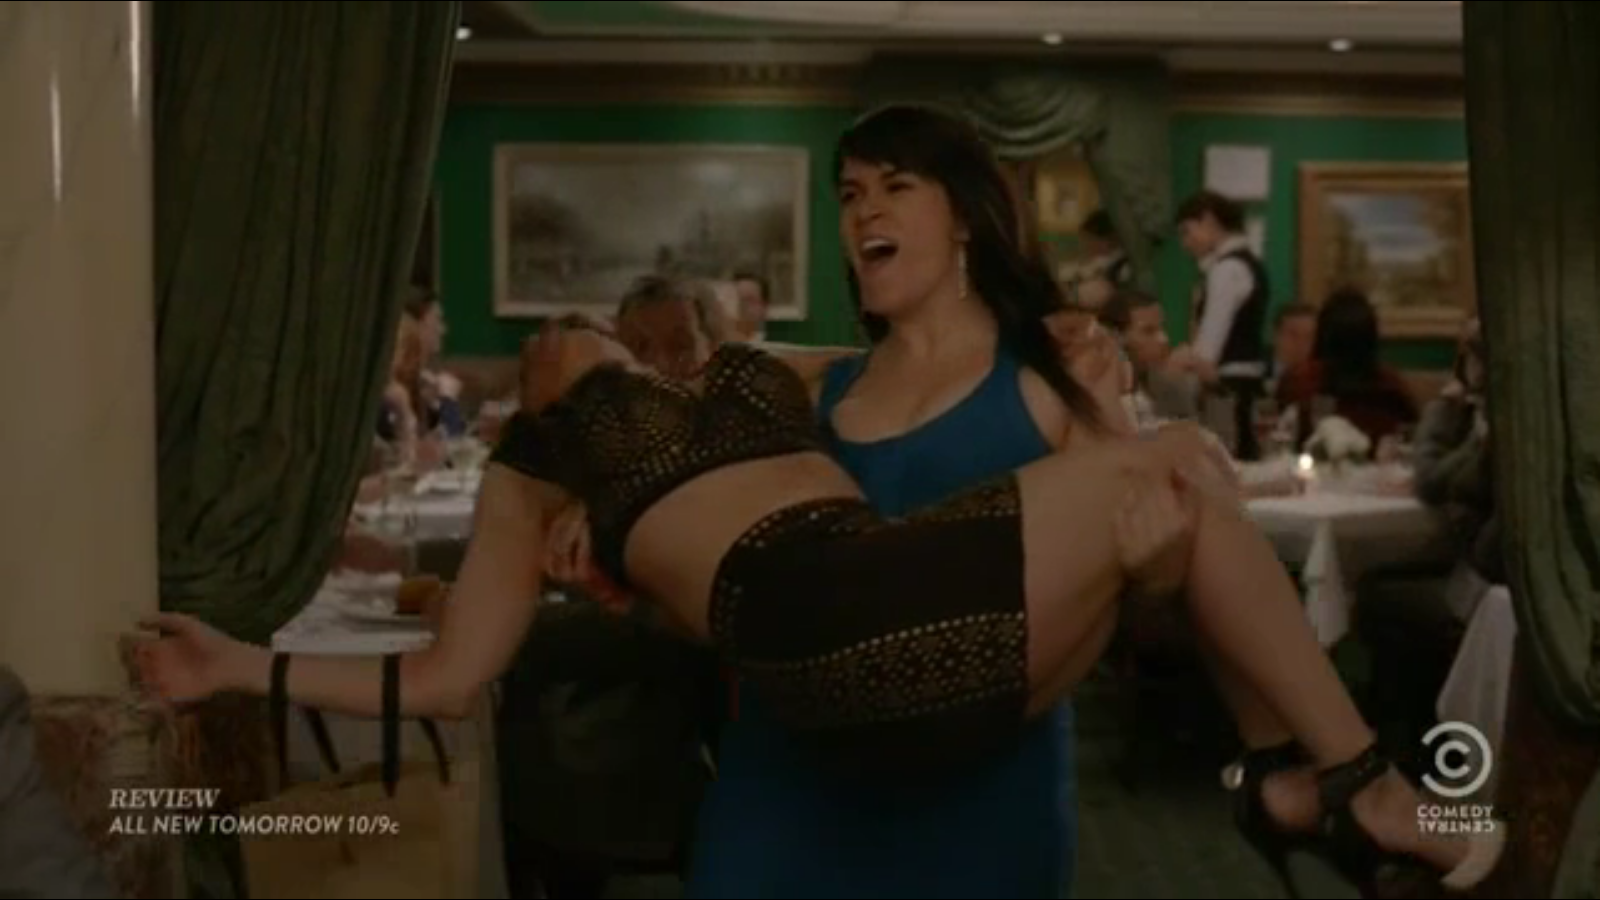 Broad City Season 1 Review